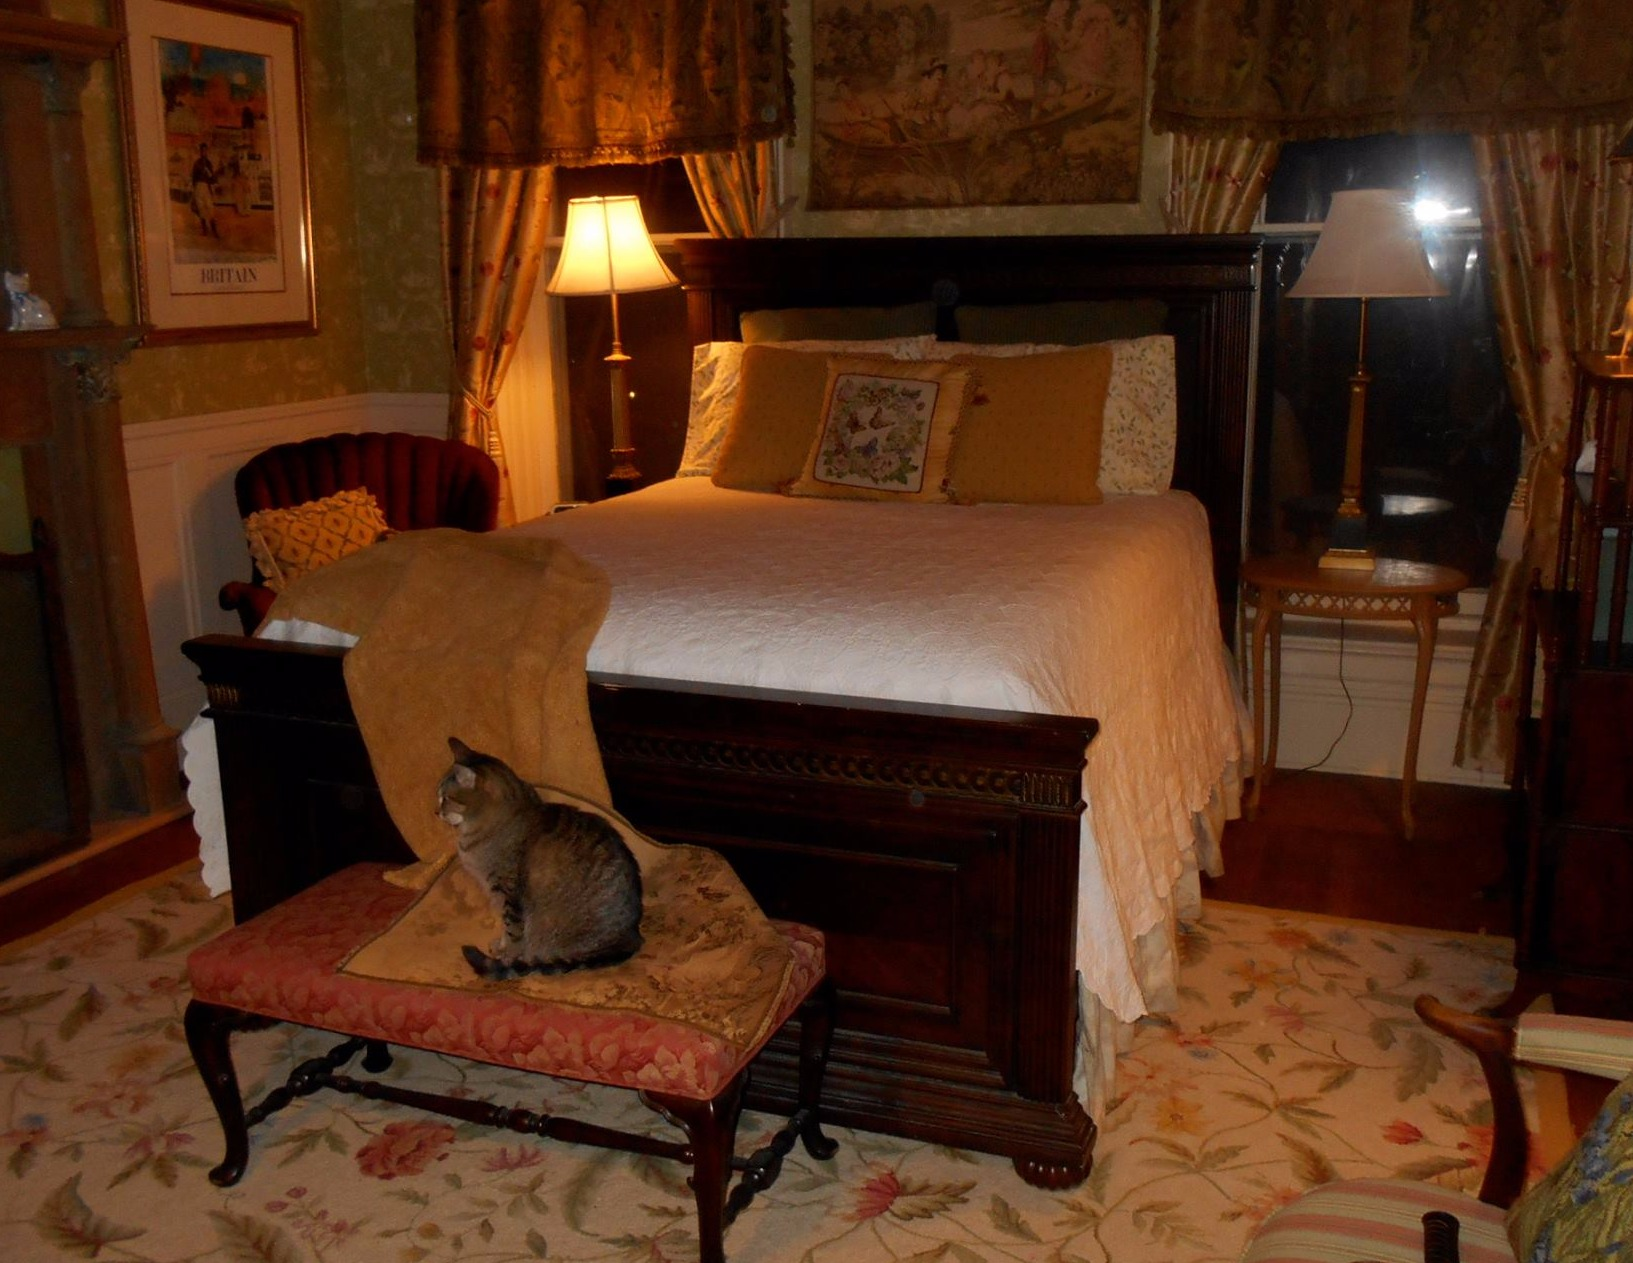 Sussex Room$110.00 per night *